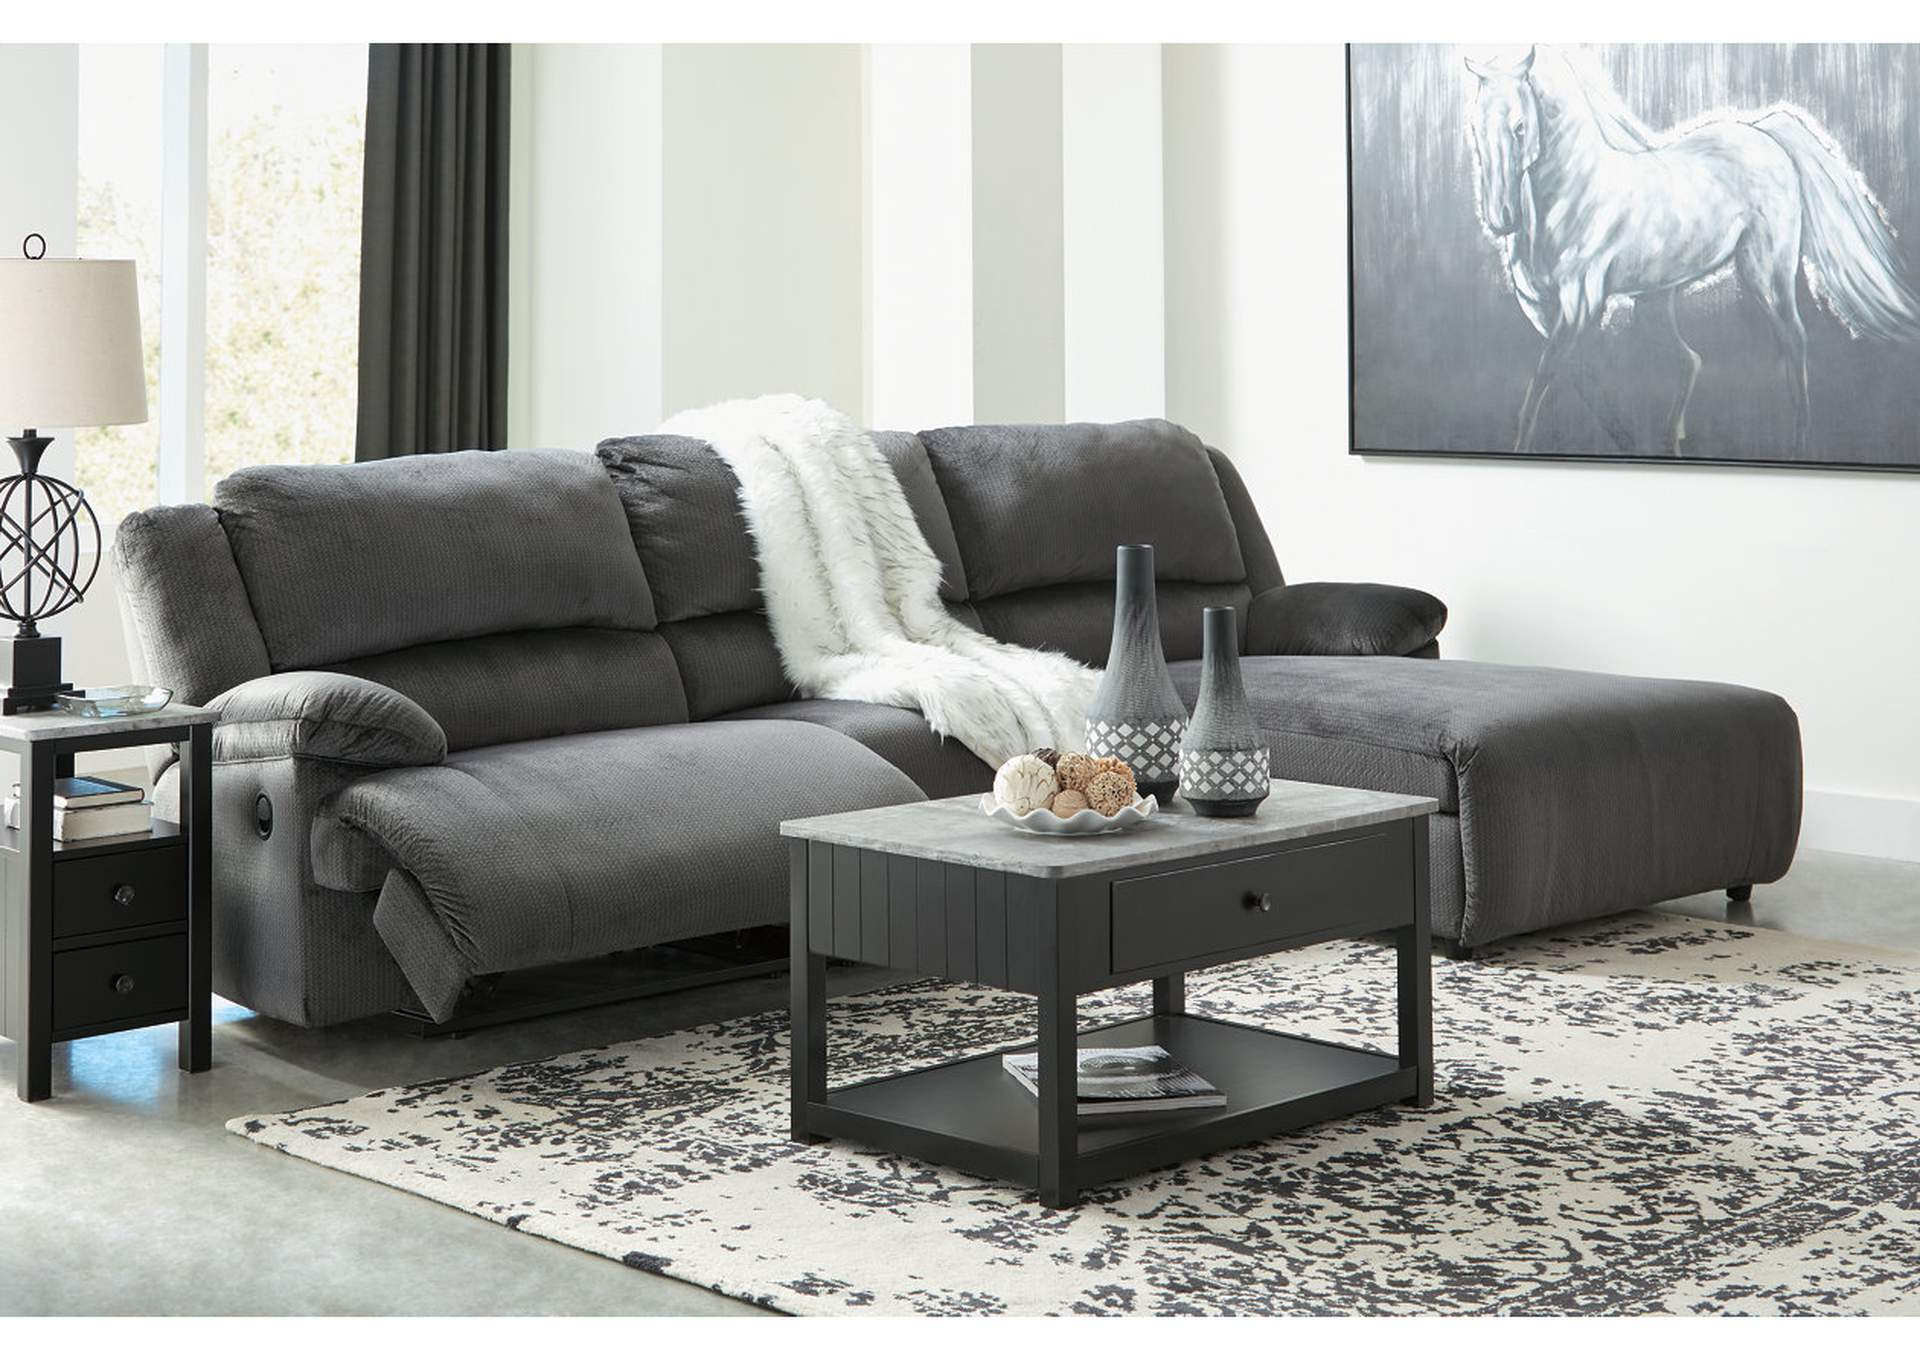 Clonmel Charcoal 3 Piece RAF Chaise Sectional,Signature Design By Ashley